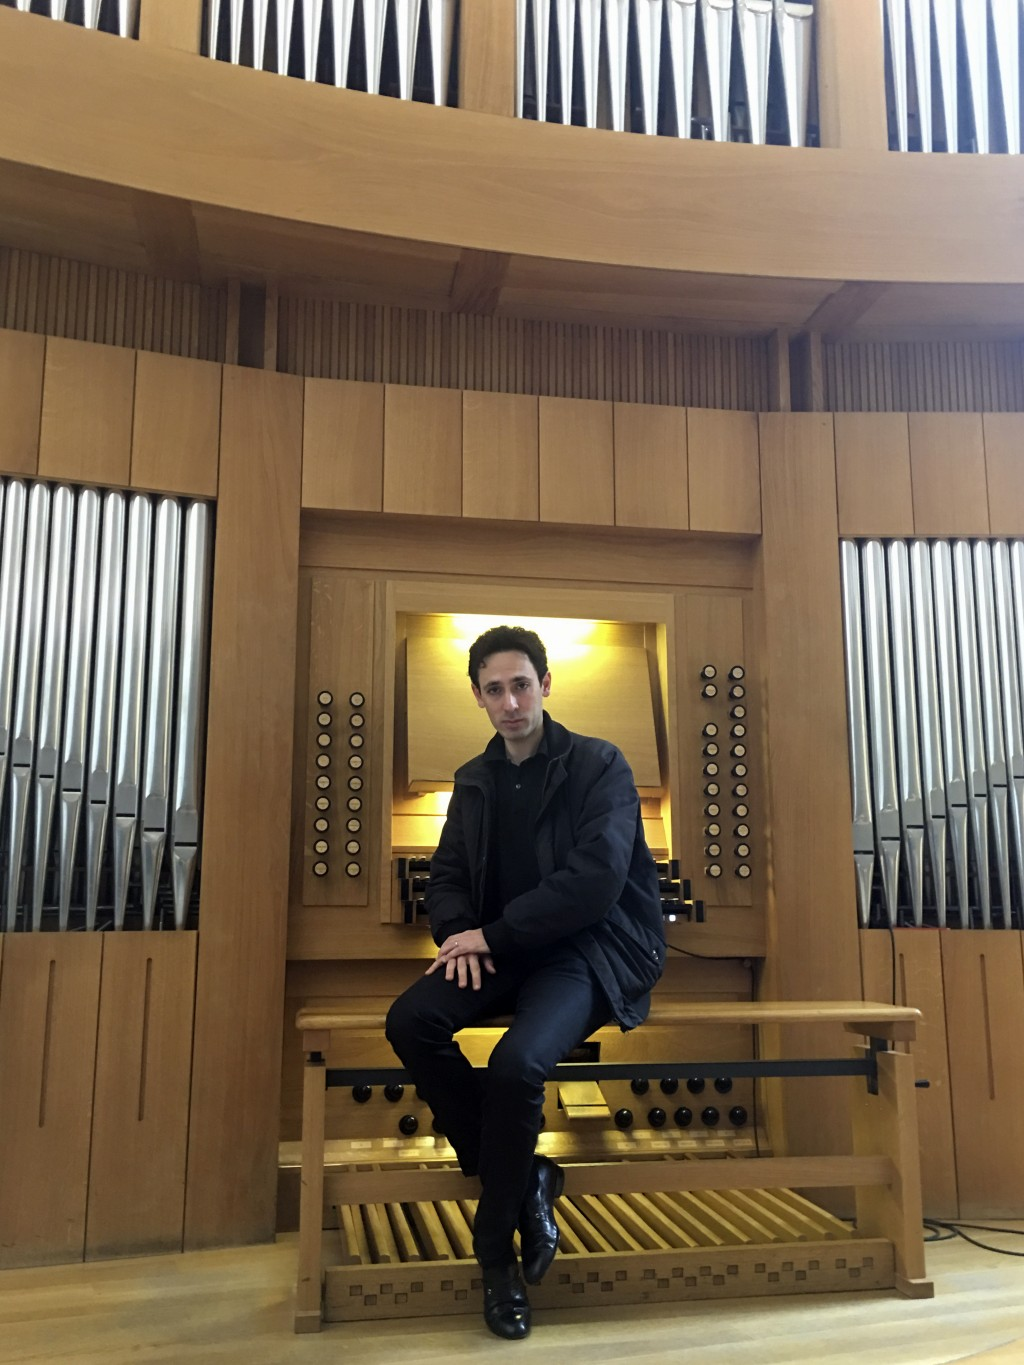 Vincent Dubois, organist at the Great Organ of Notre-Dame de Paris, poses at the organ at Strasbourg Conservatoire (music school), eastern France, Wed